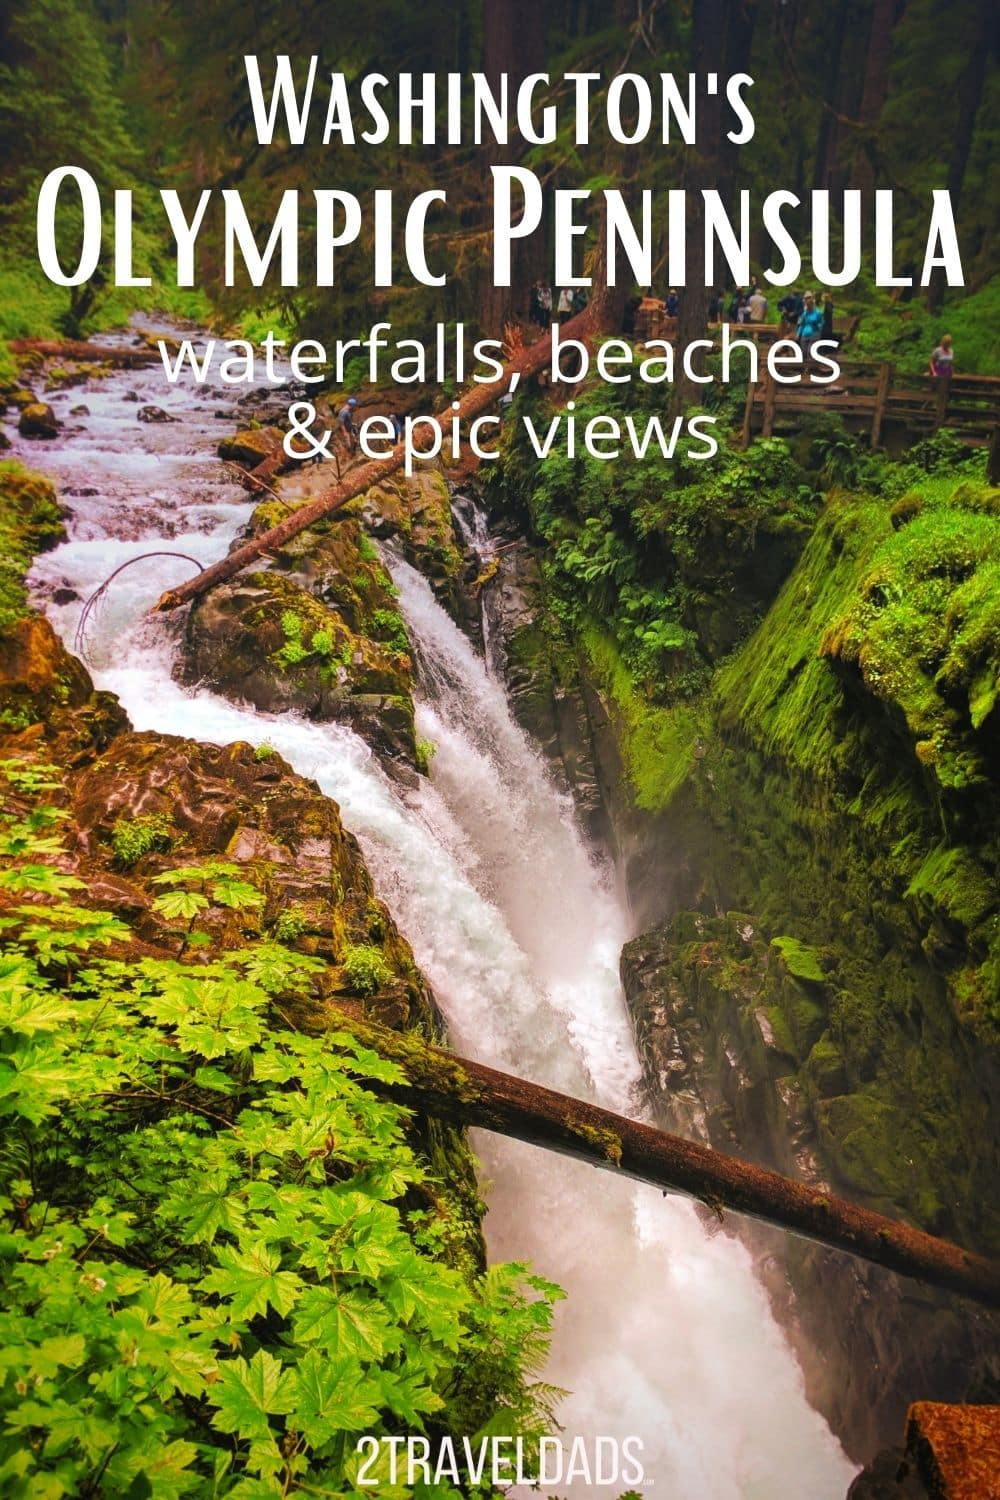 The best things to do on the Olympic Peninsula, including Olympic National Park sites, beaches, lighthouse and more. When to visit the Olympic Peninsula, free activities, and epic views in Washington State.